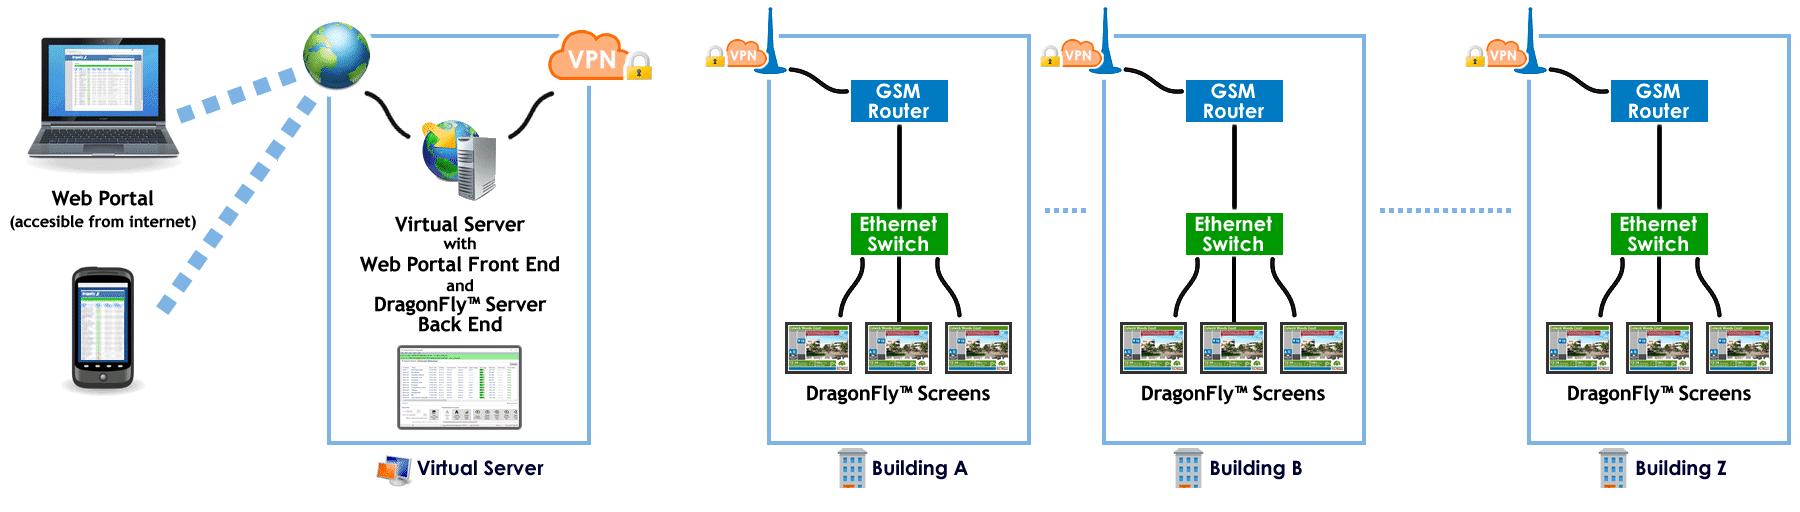 DragonFly Display GSM Connectivity